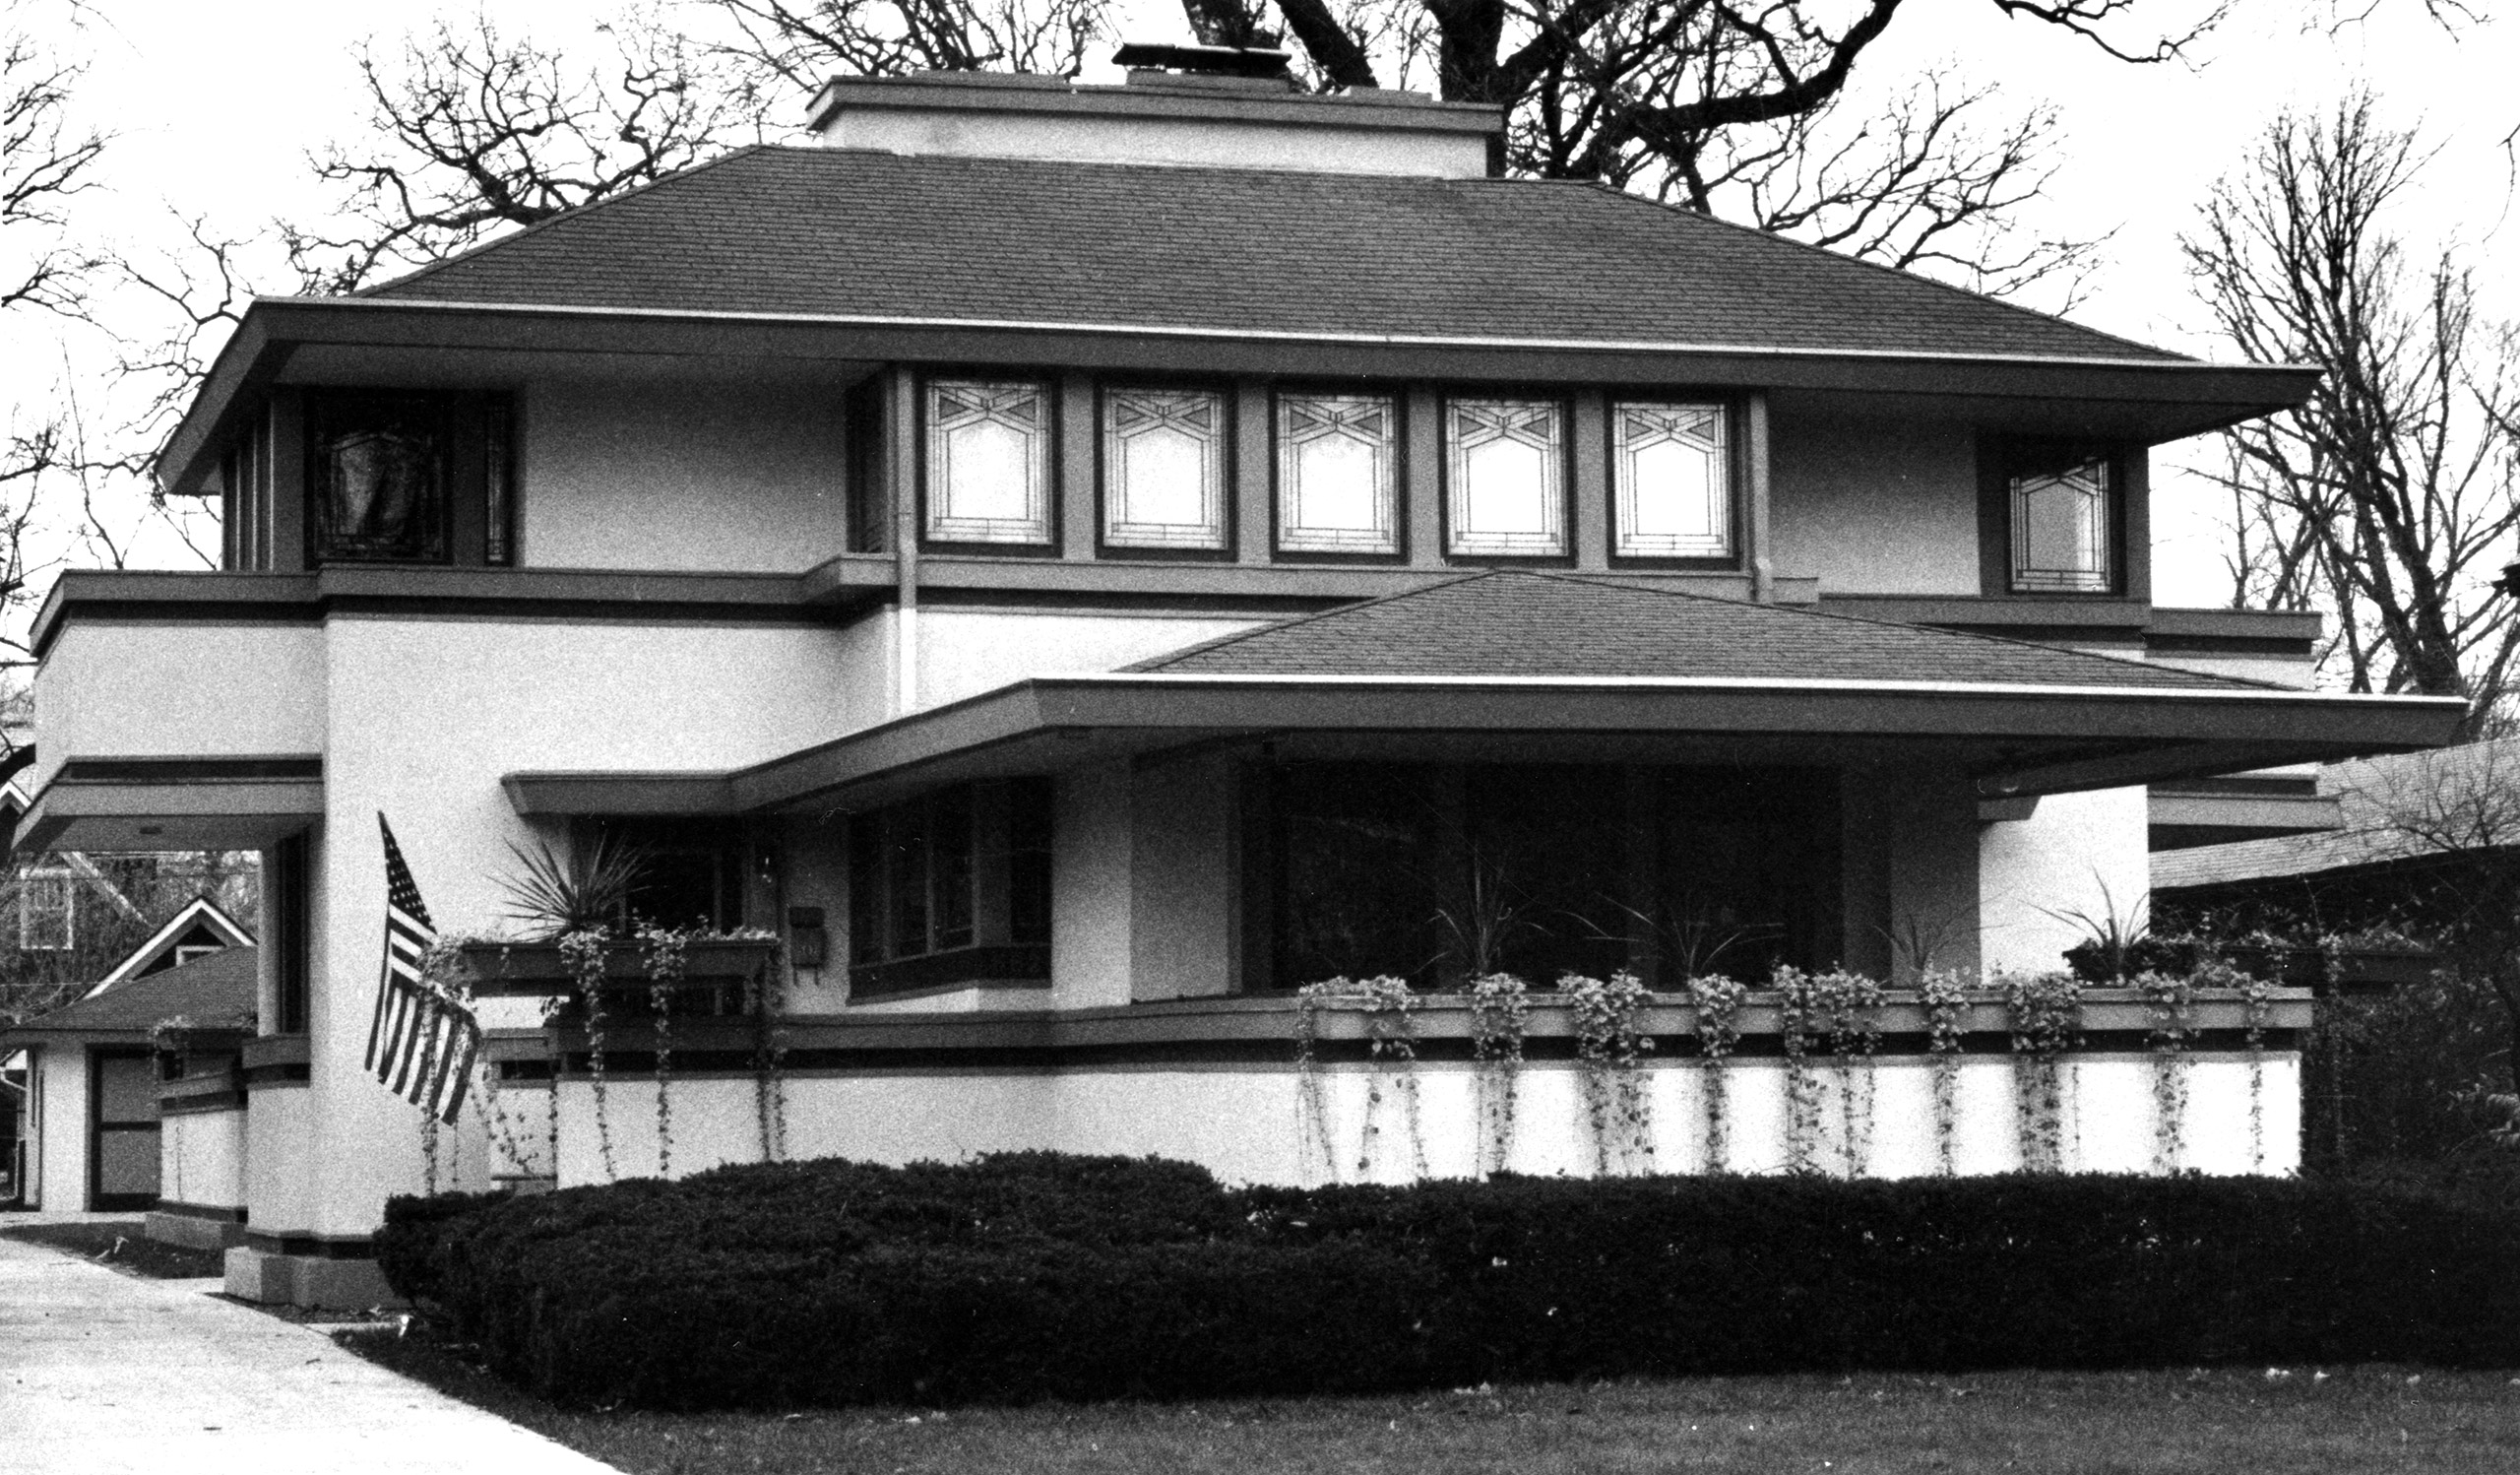 Frank Lloyd Wright's J. Kibben Ingalls house in River Forest, Ill. Built circa 1909.